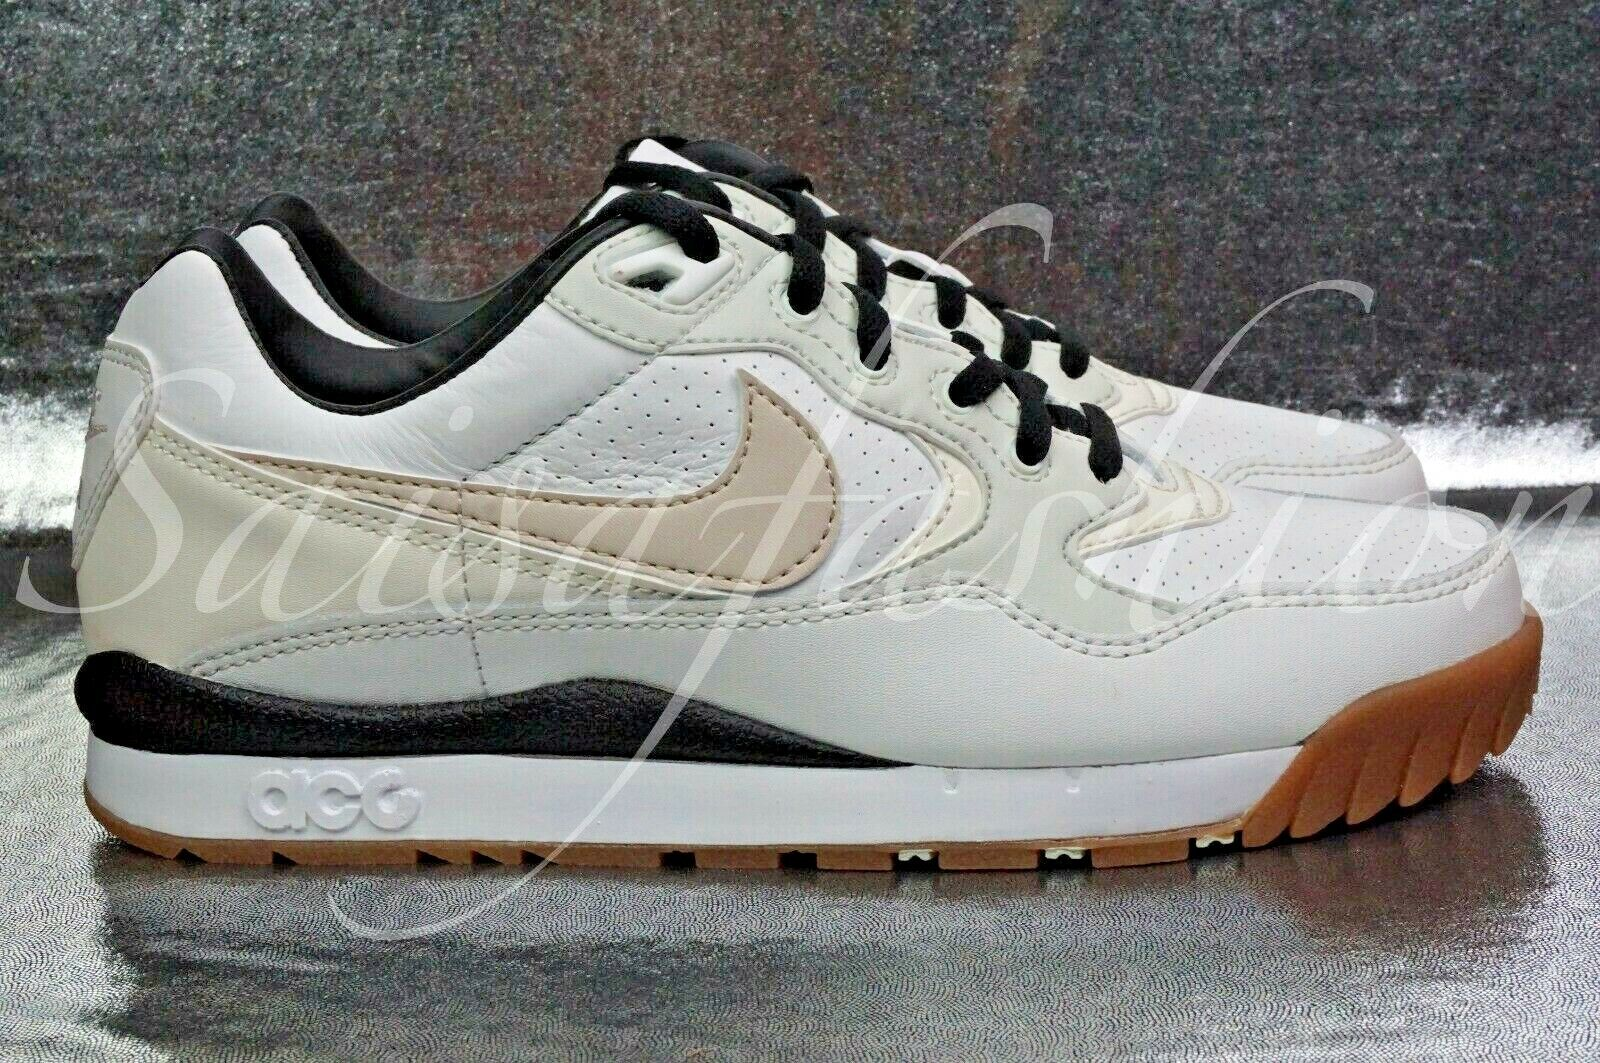 Nike Air Wildwood ACG White Black Gum Outdoors Wmns shoes AO3116-100 Sz 6